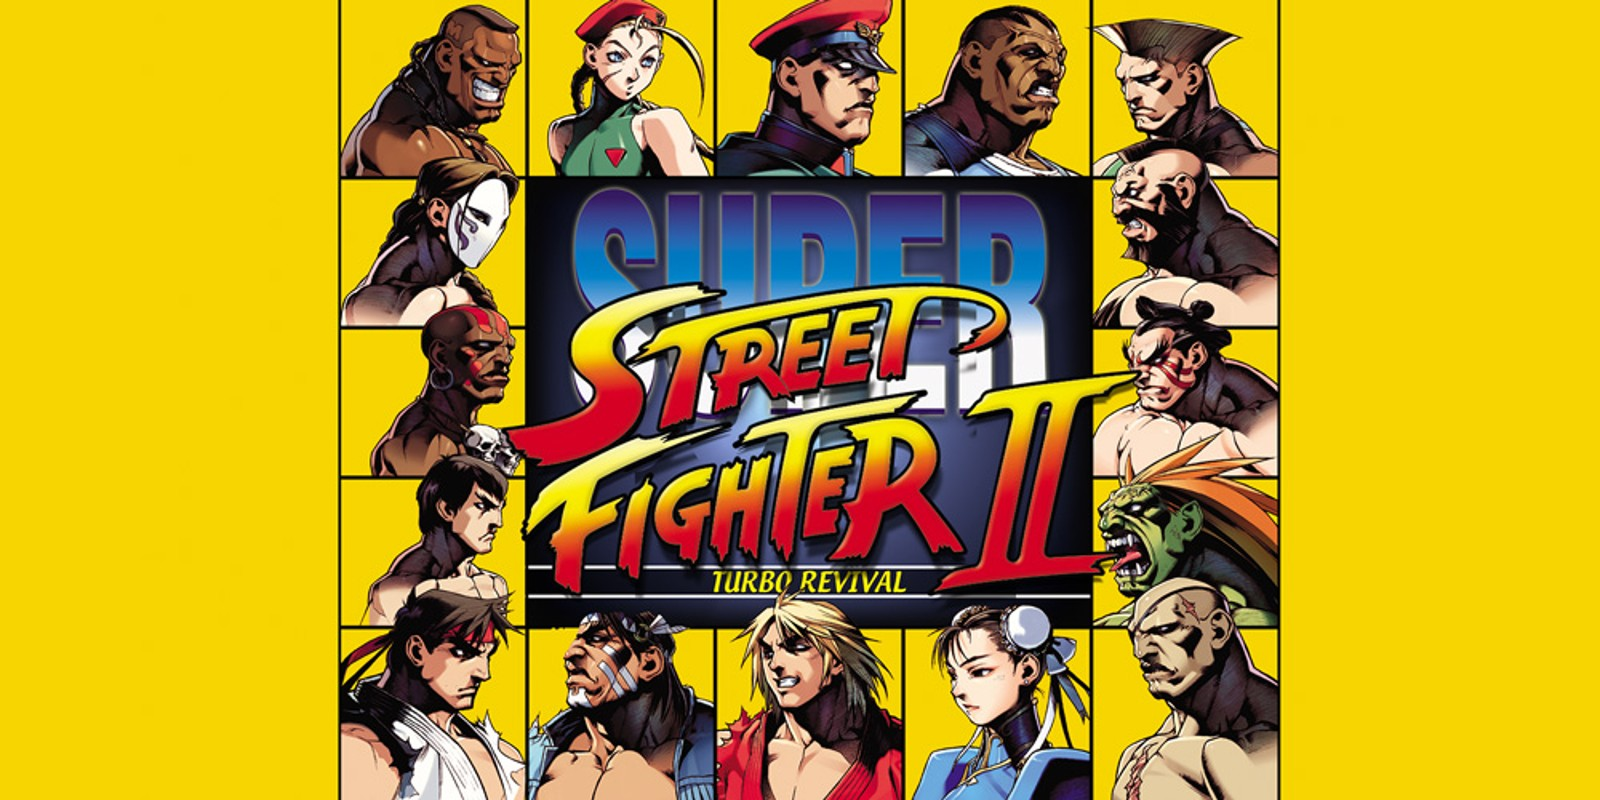 Super Street Fighter™ II Turbo Revival